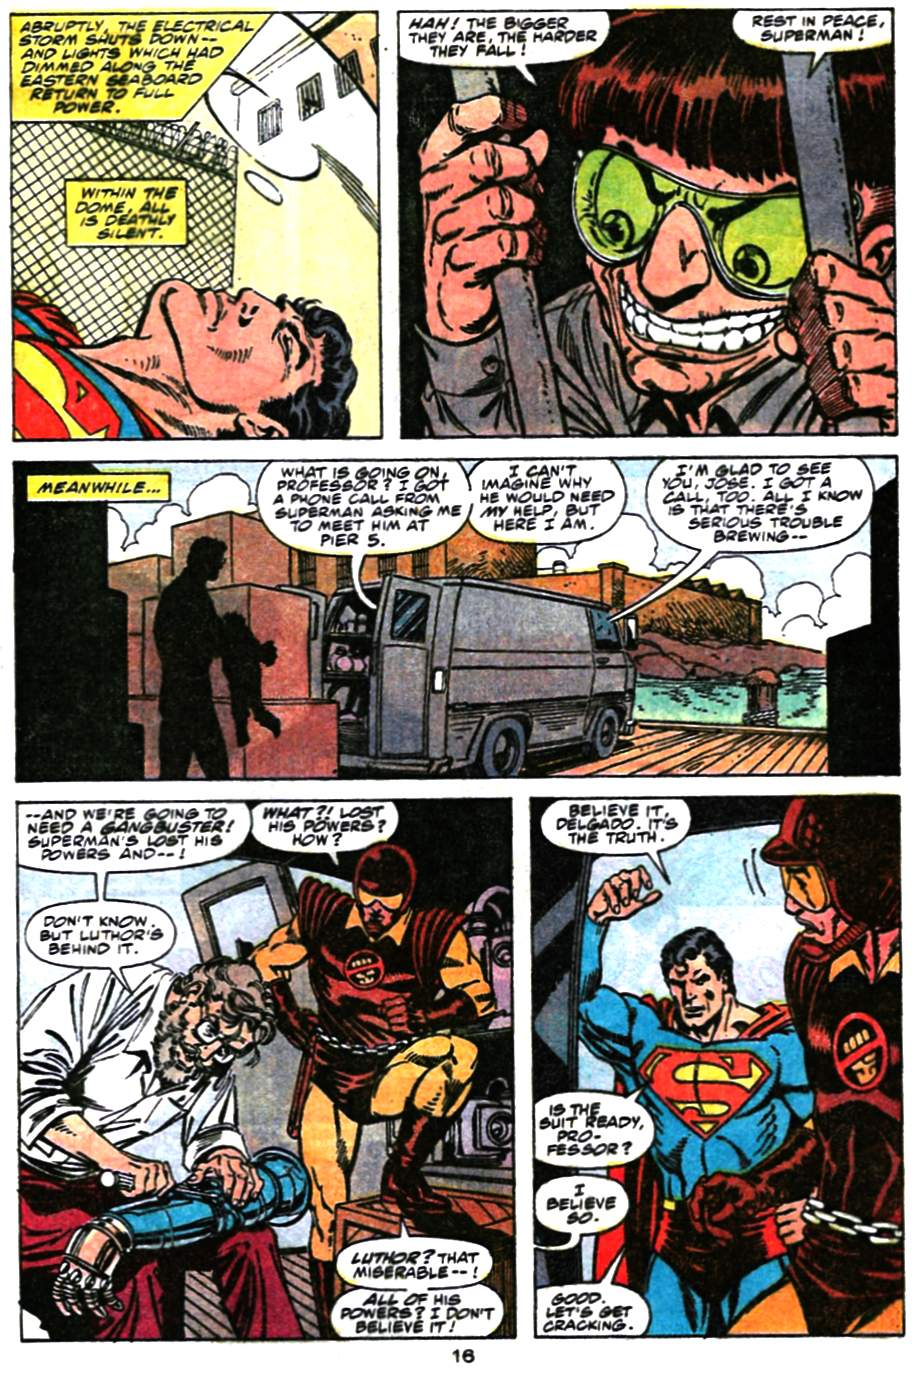 Read online Action Comics (1938) comic -  Issue #659 - 17